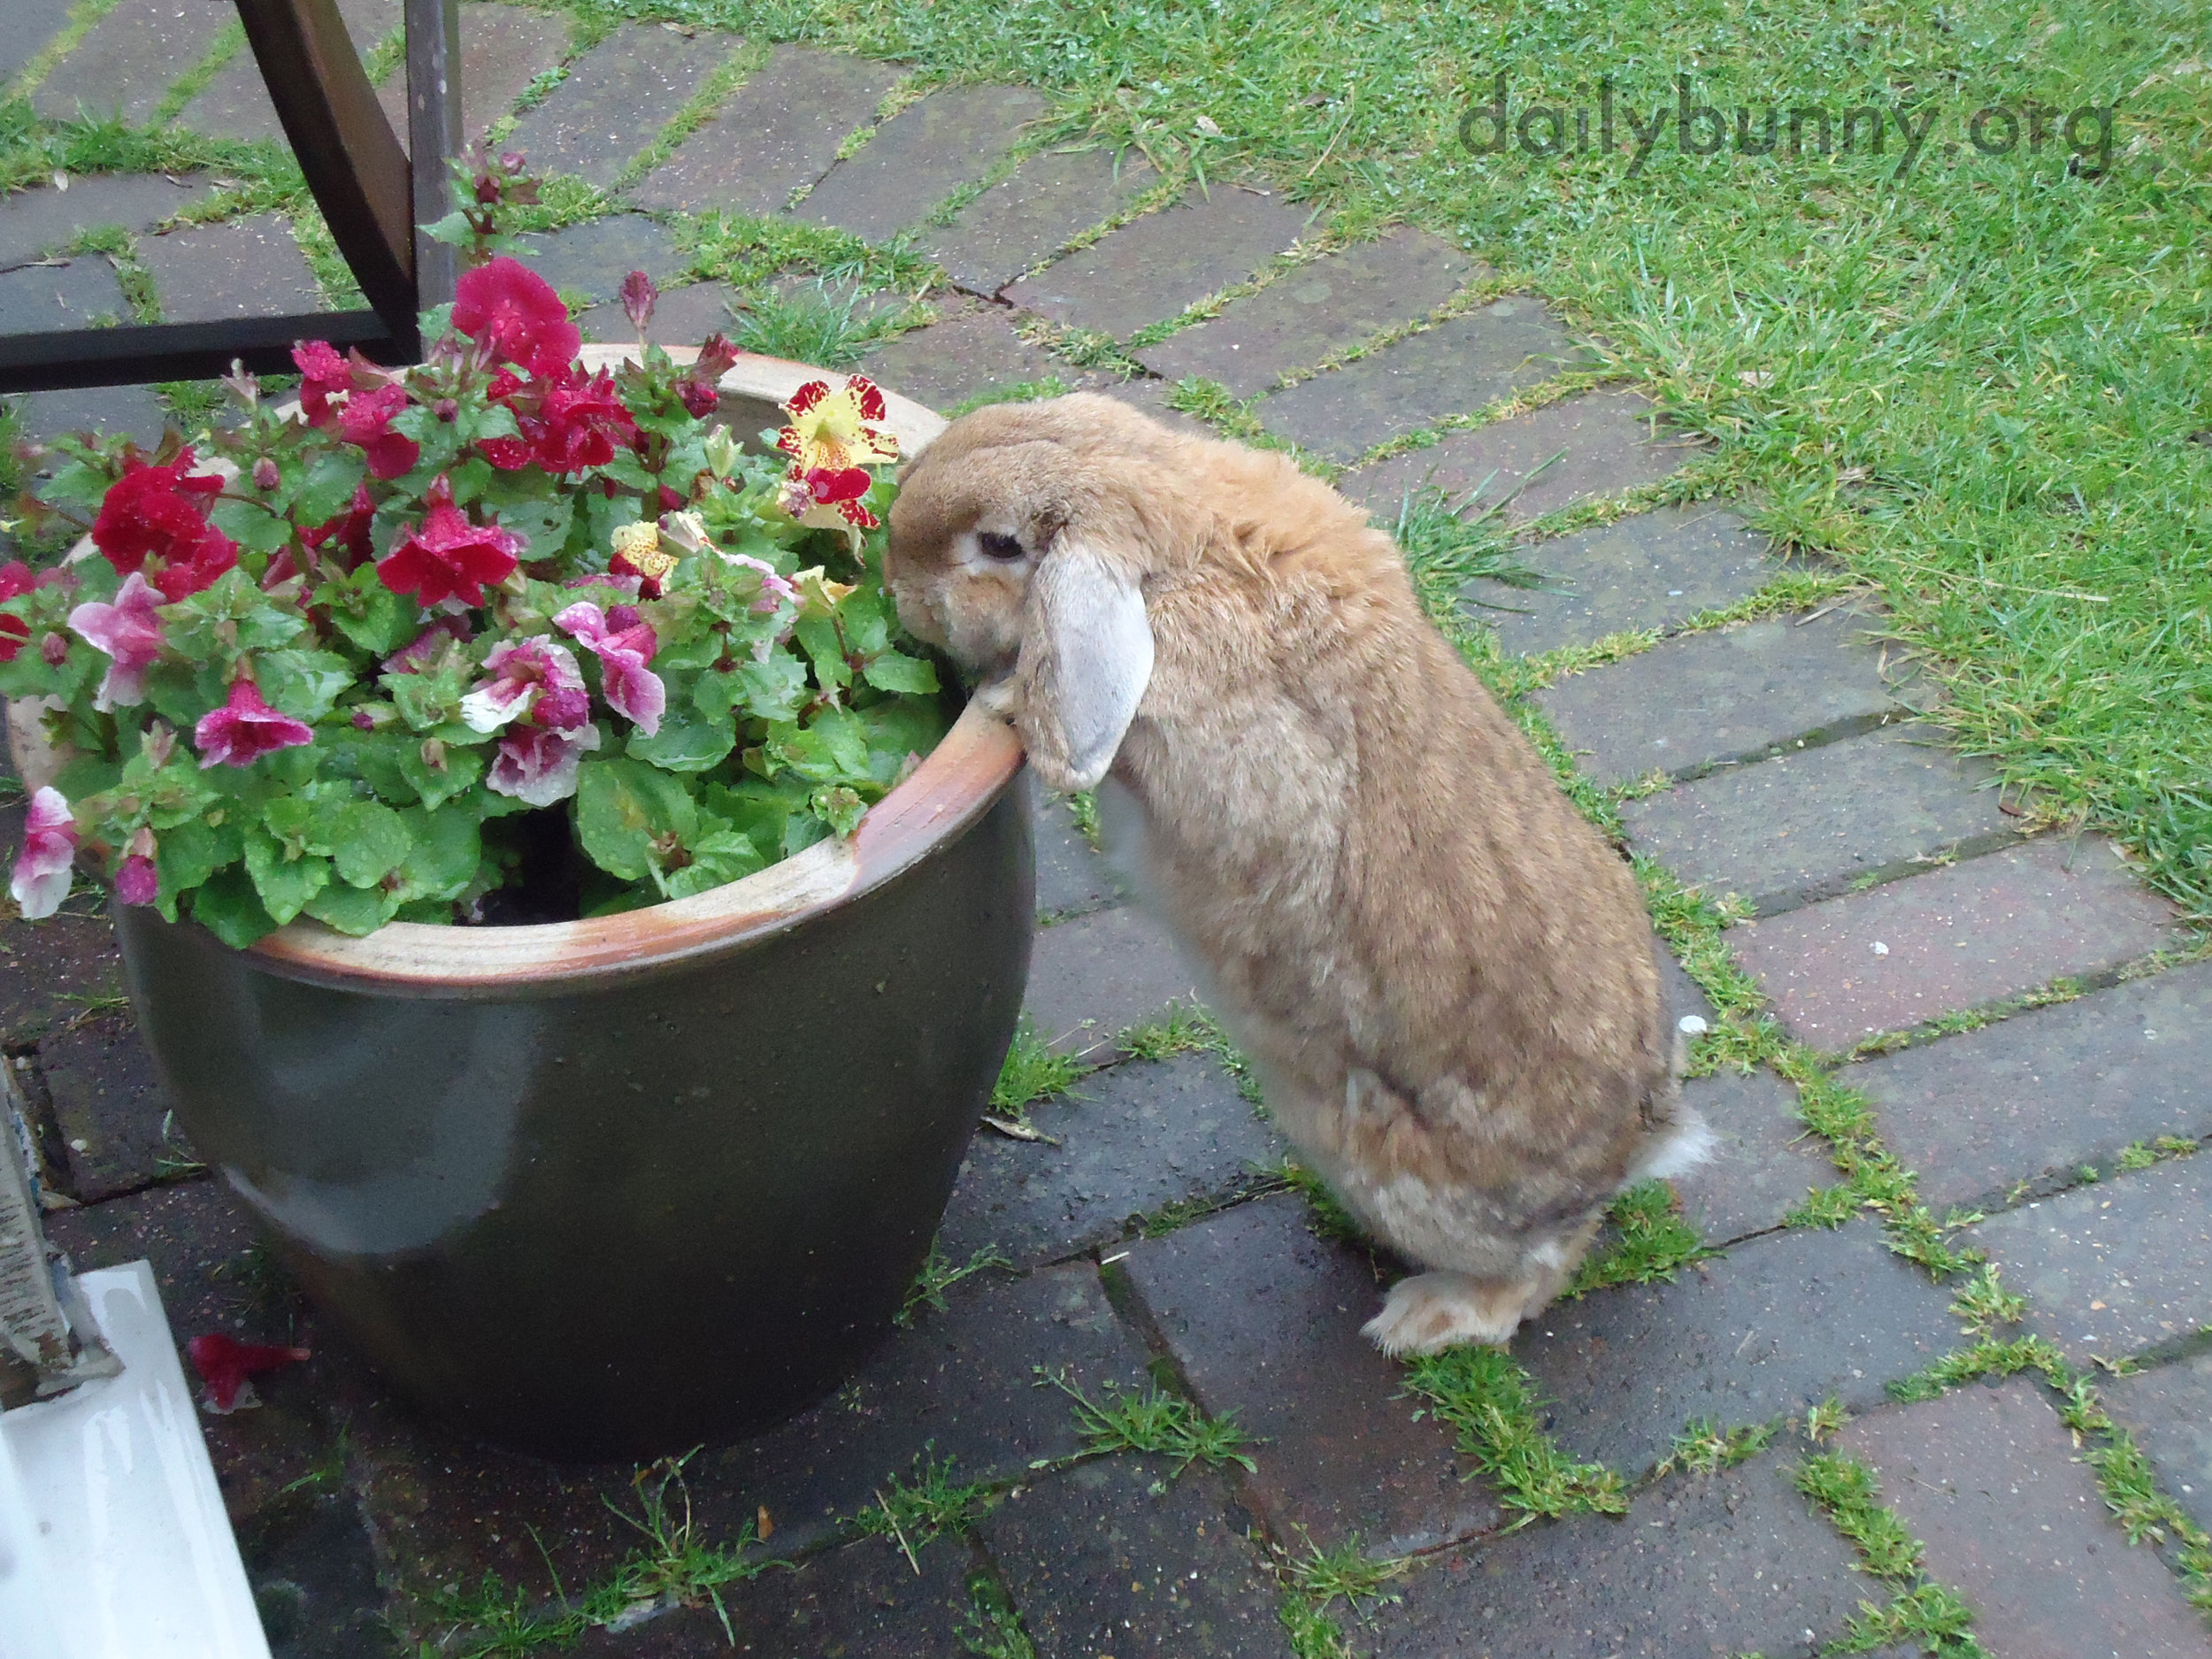 Bunny Has Found the Flowers and Will Help Herself 2